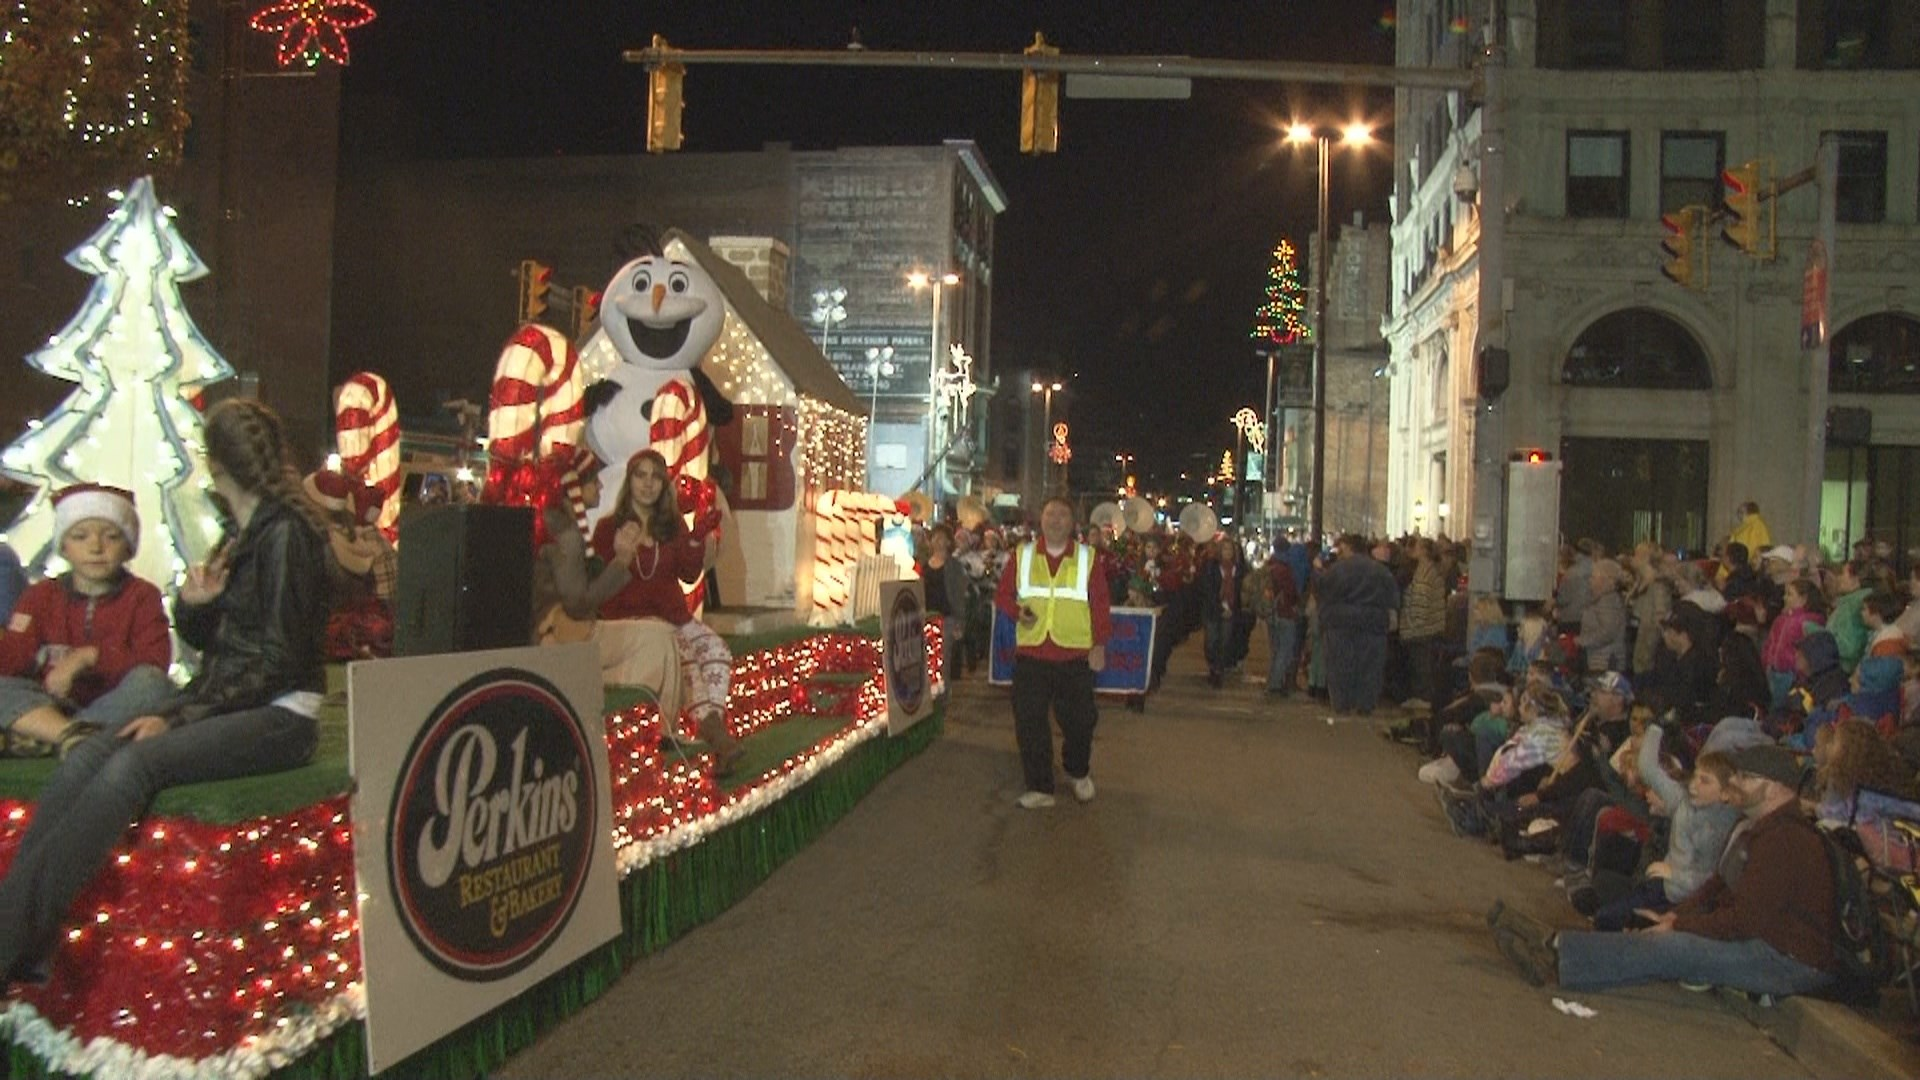 Marshall County Christmas Parade 2020 Wheeling Fantasy in Lights Christmas Parade Cancelled due to COVID